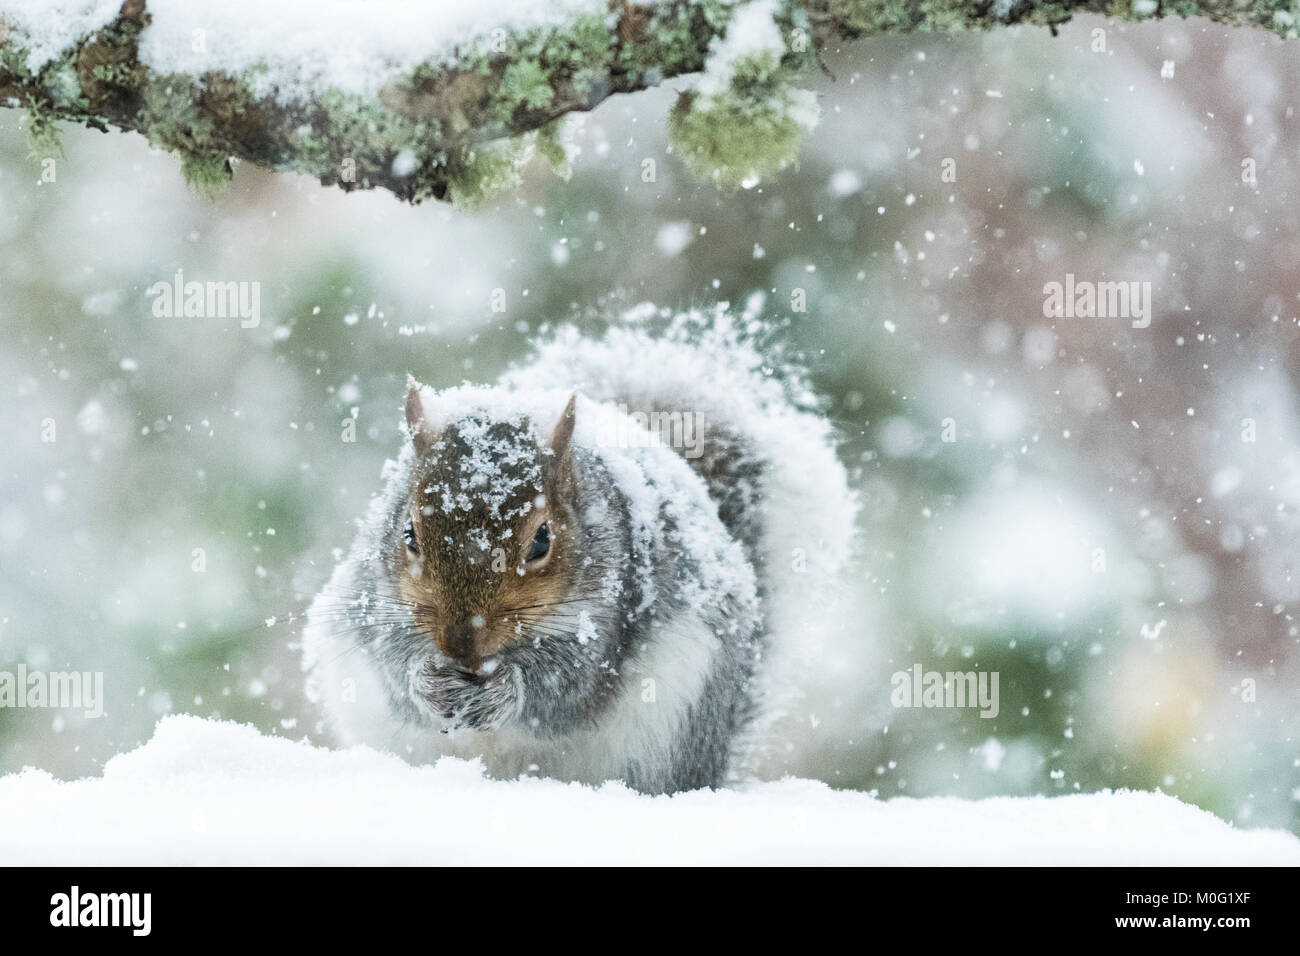 Grey Squirrel in UK in winter - covered in thick snow - Scotland, UK - Stock Image